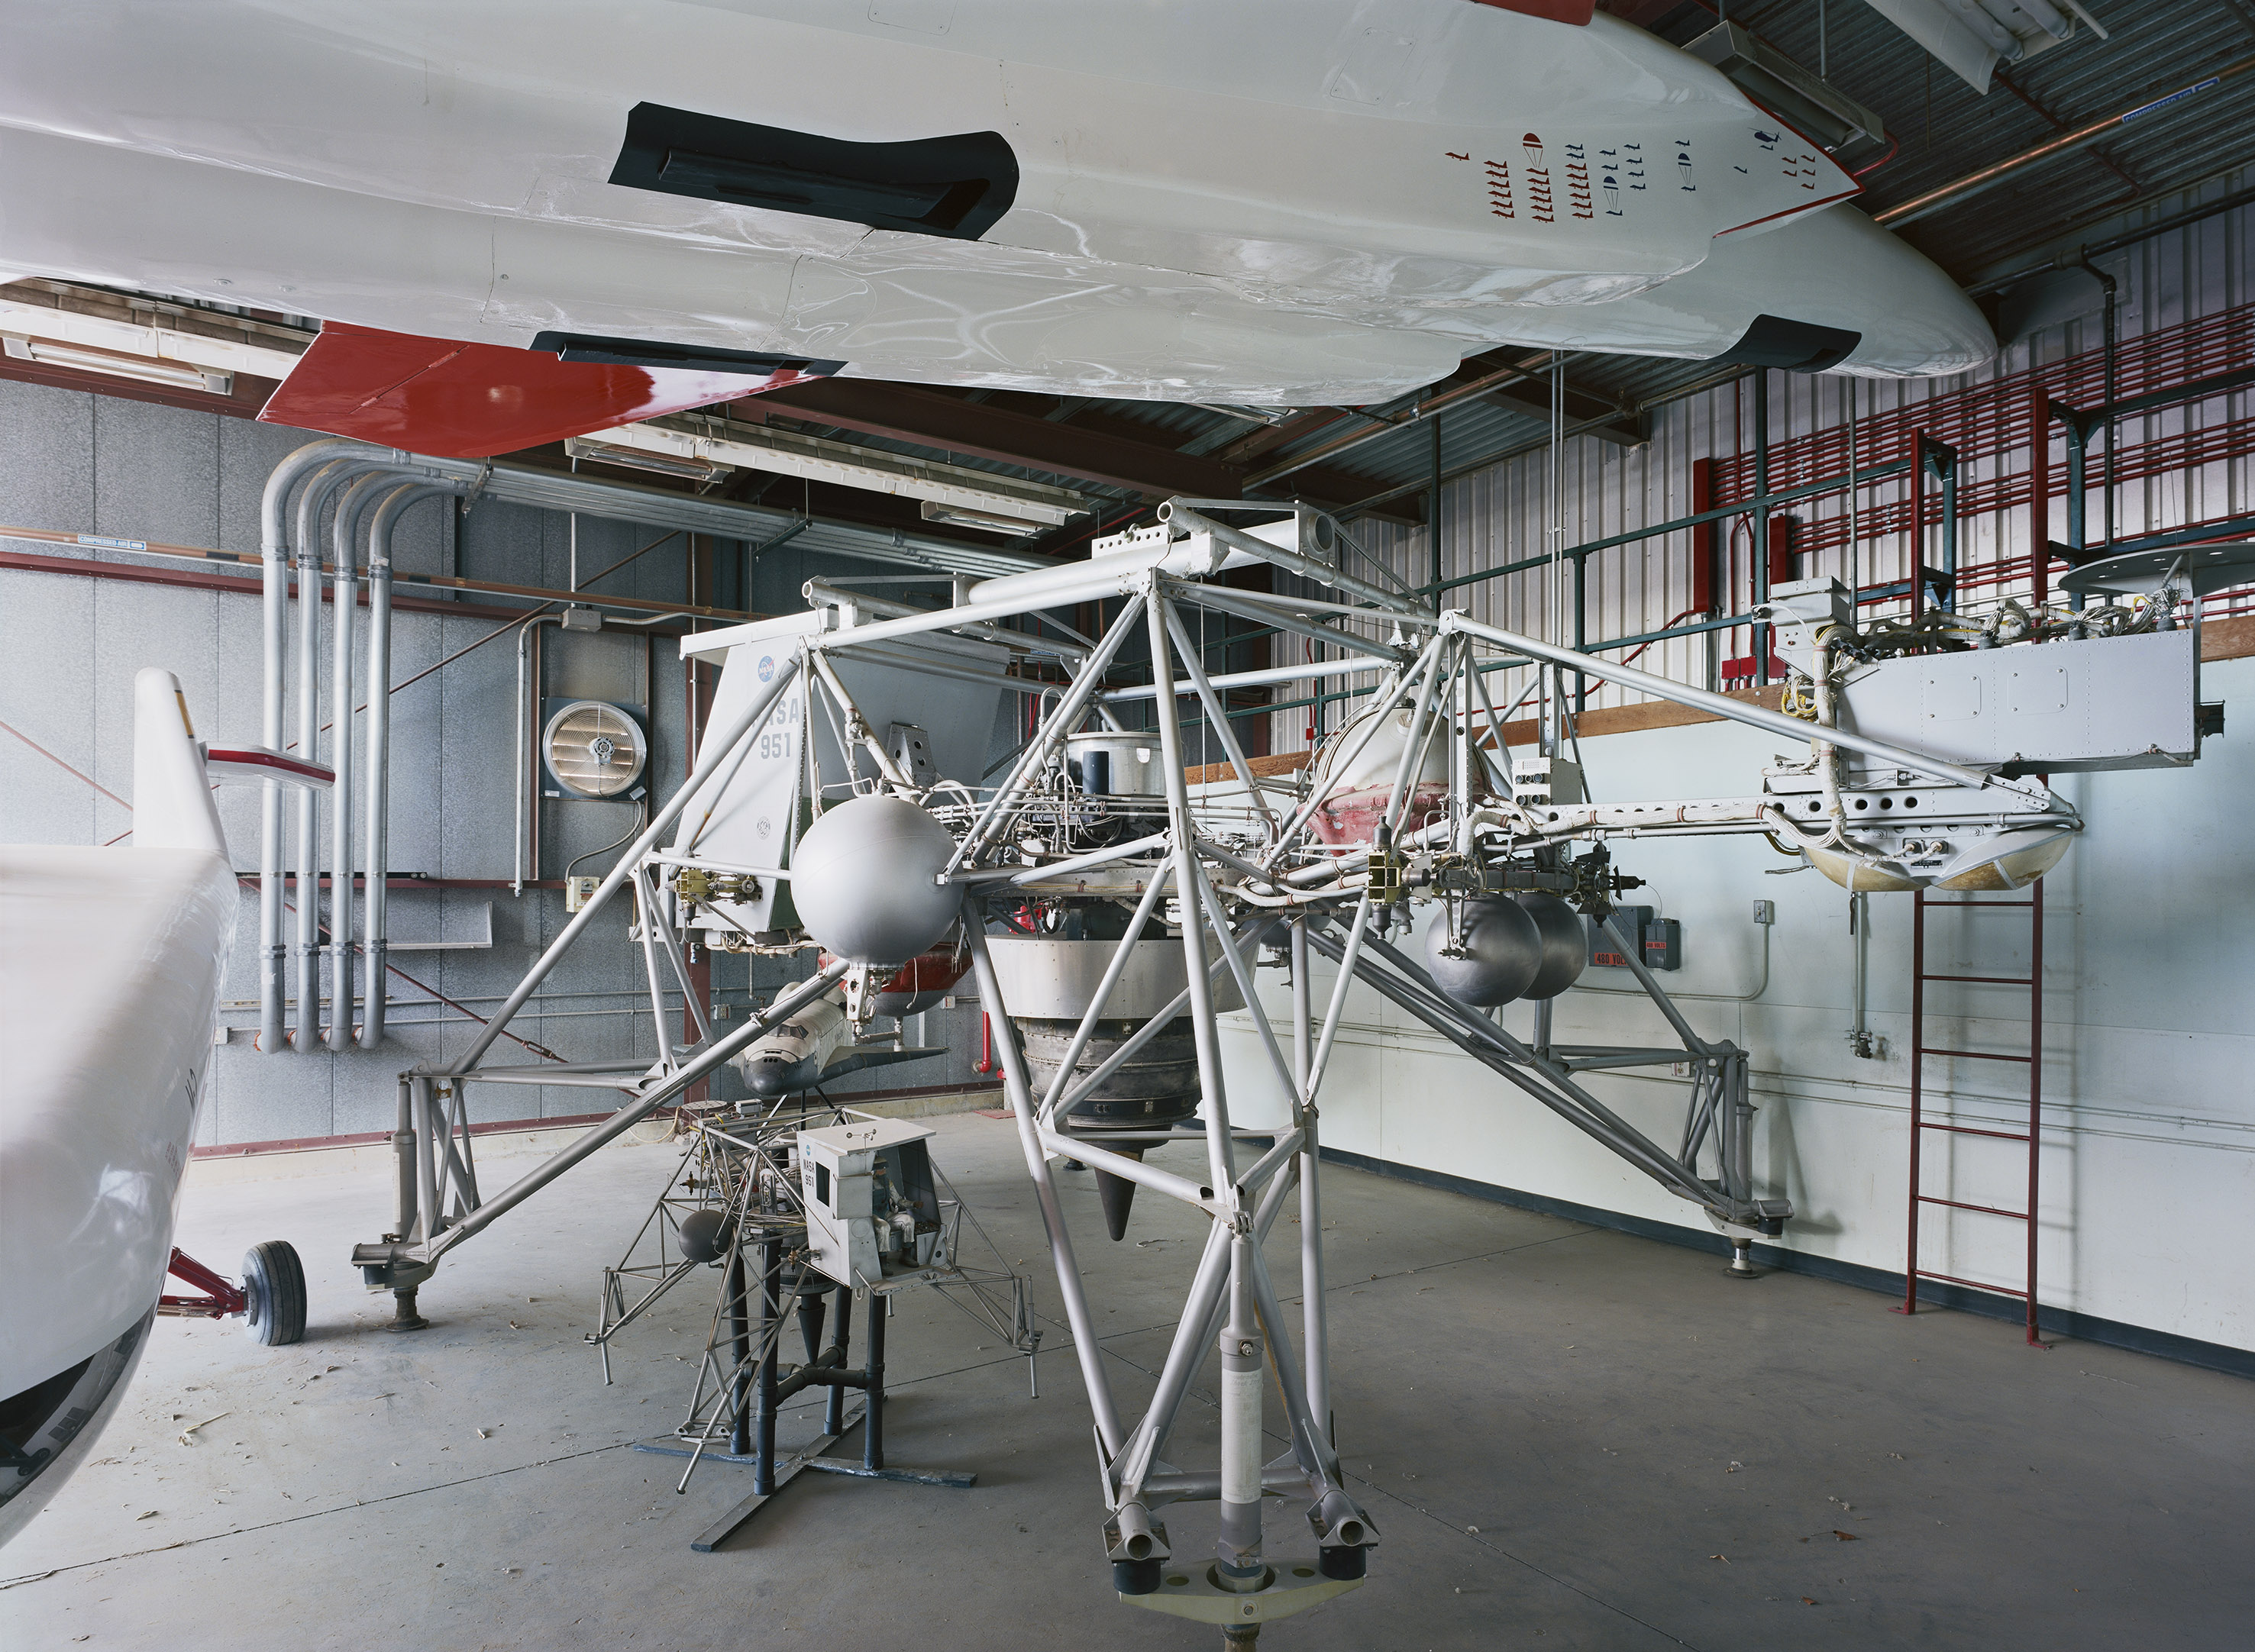 Research Vehicle, Armstrong Flight Research Center, Edwards 2014 © Thomas Struth